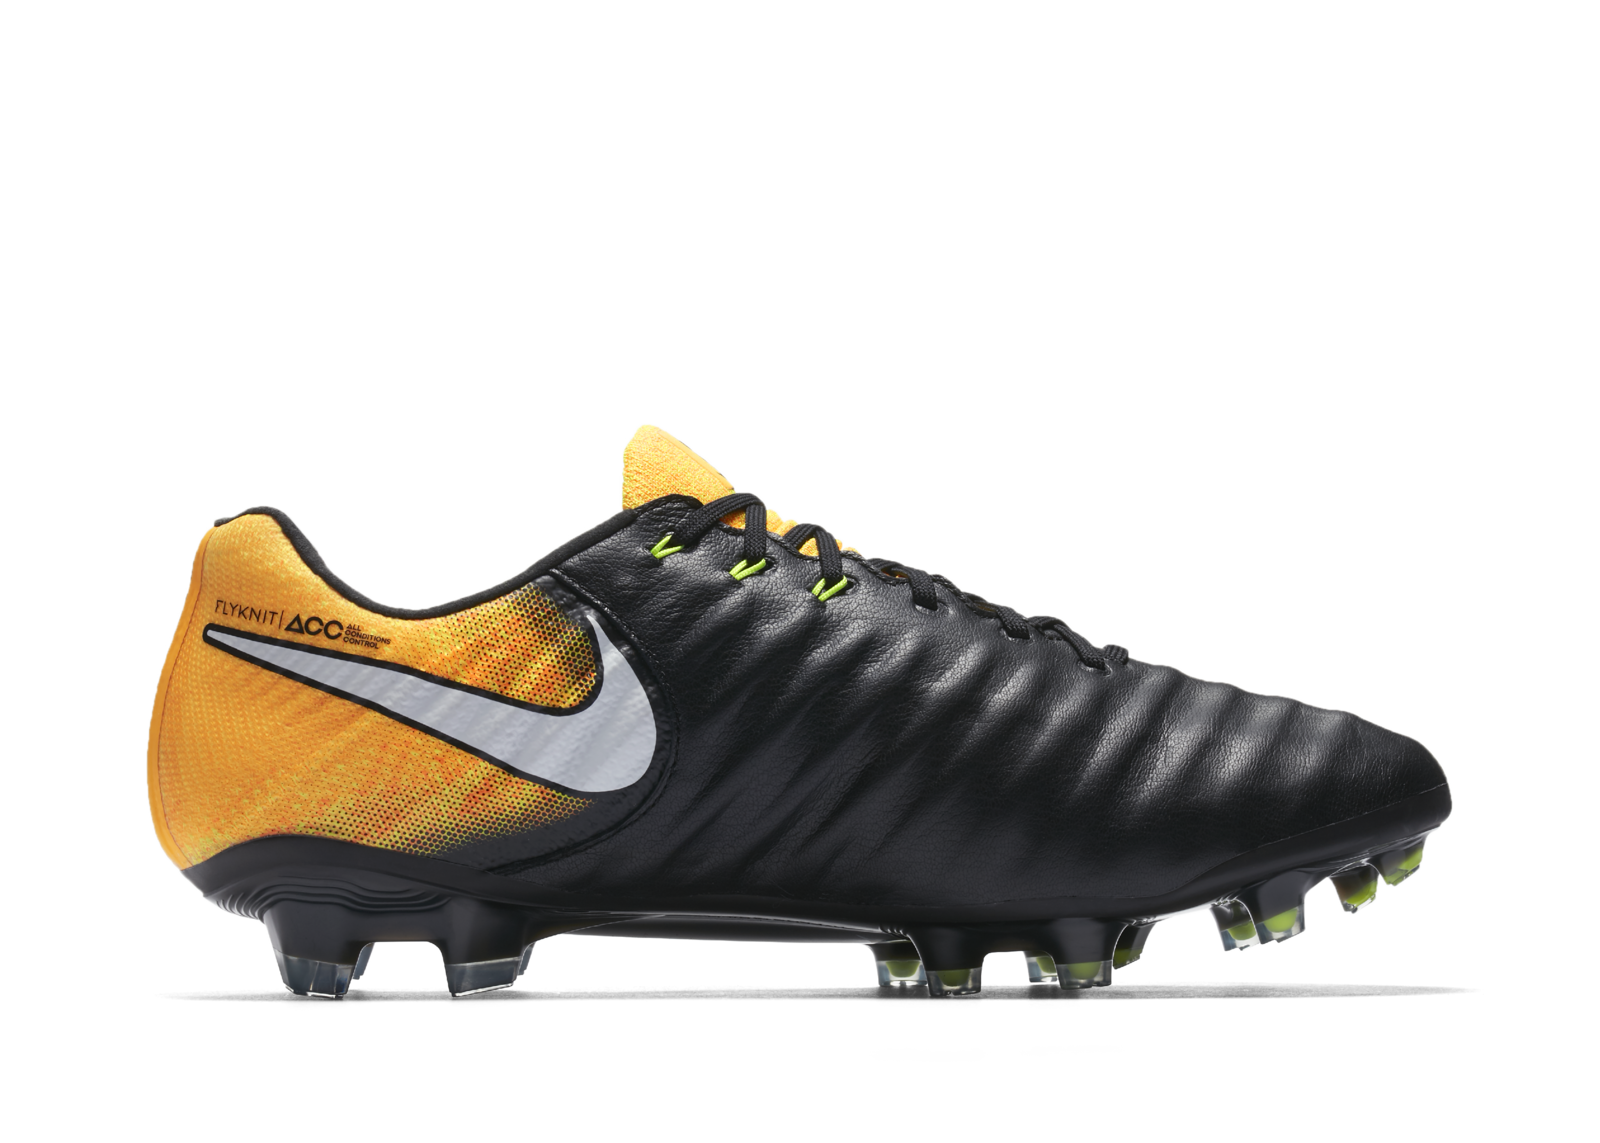 Nike Tiempo Legend 7: Making the Exceptional Look Easy 14